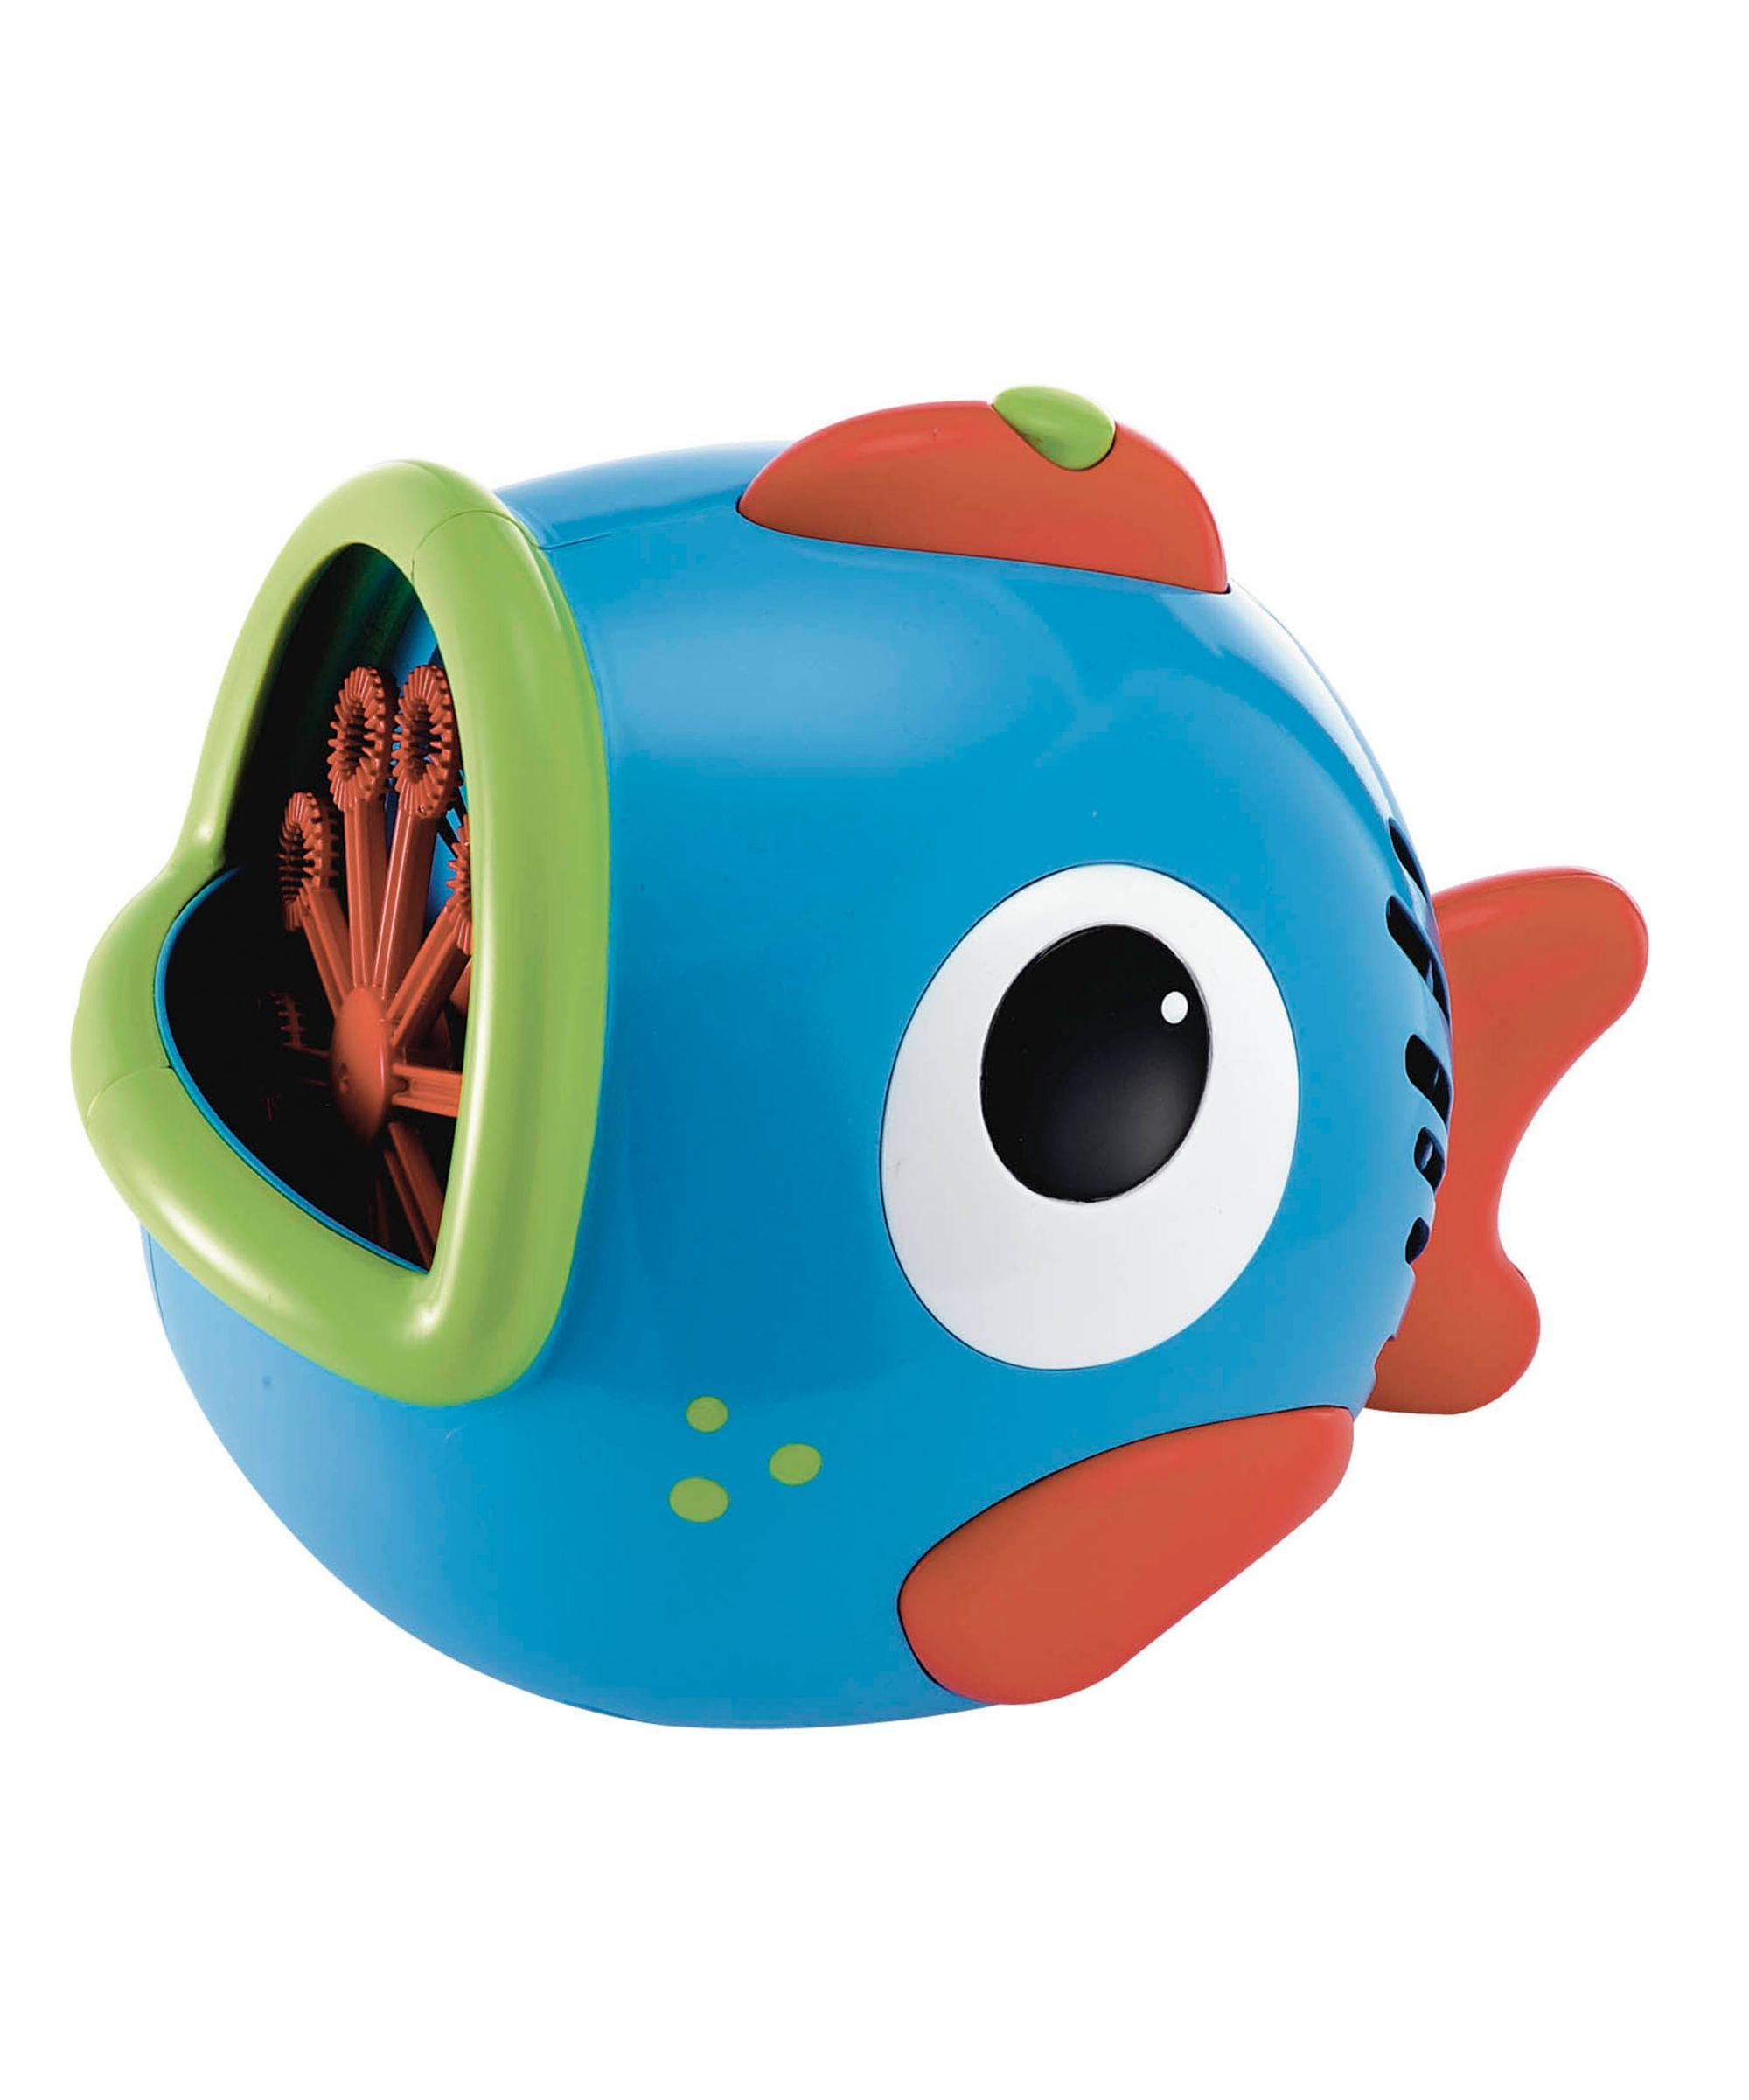 Freddy the Fish Bubble Machine | Toys | Pinterest | Bubble machine